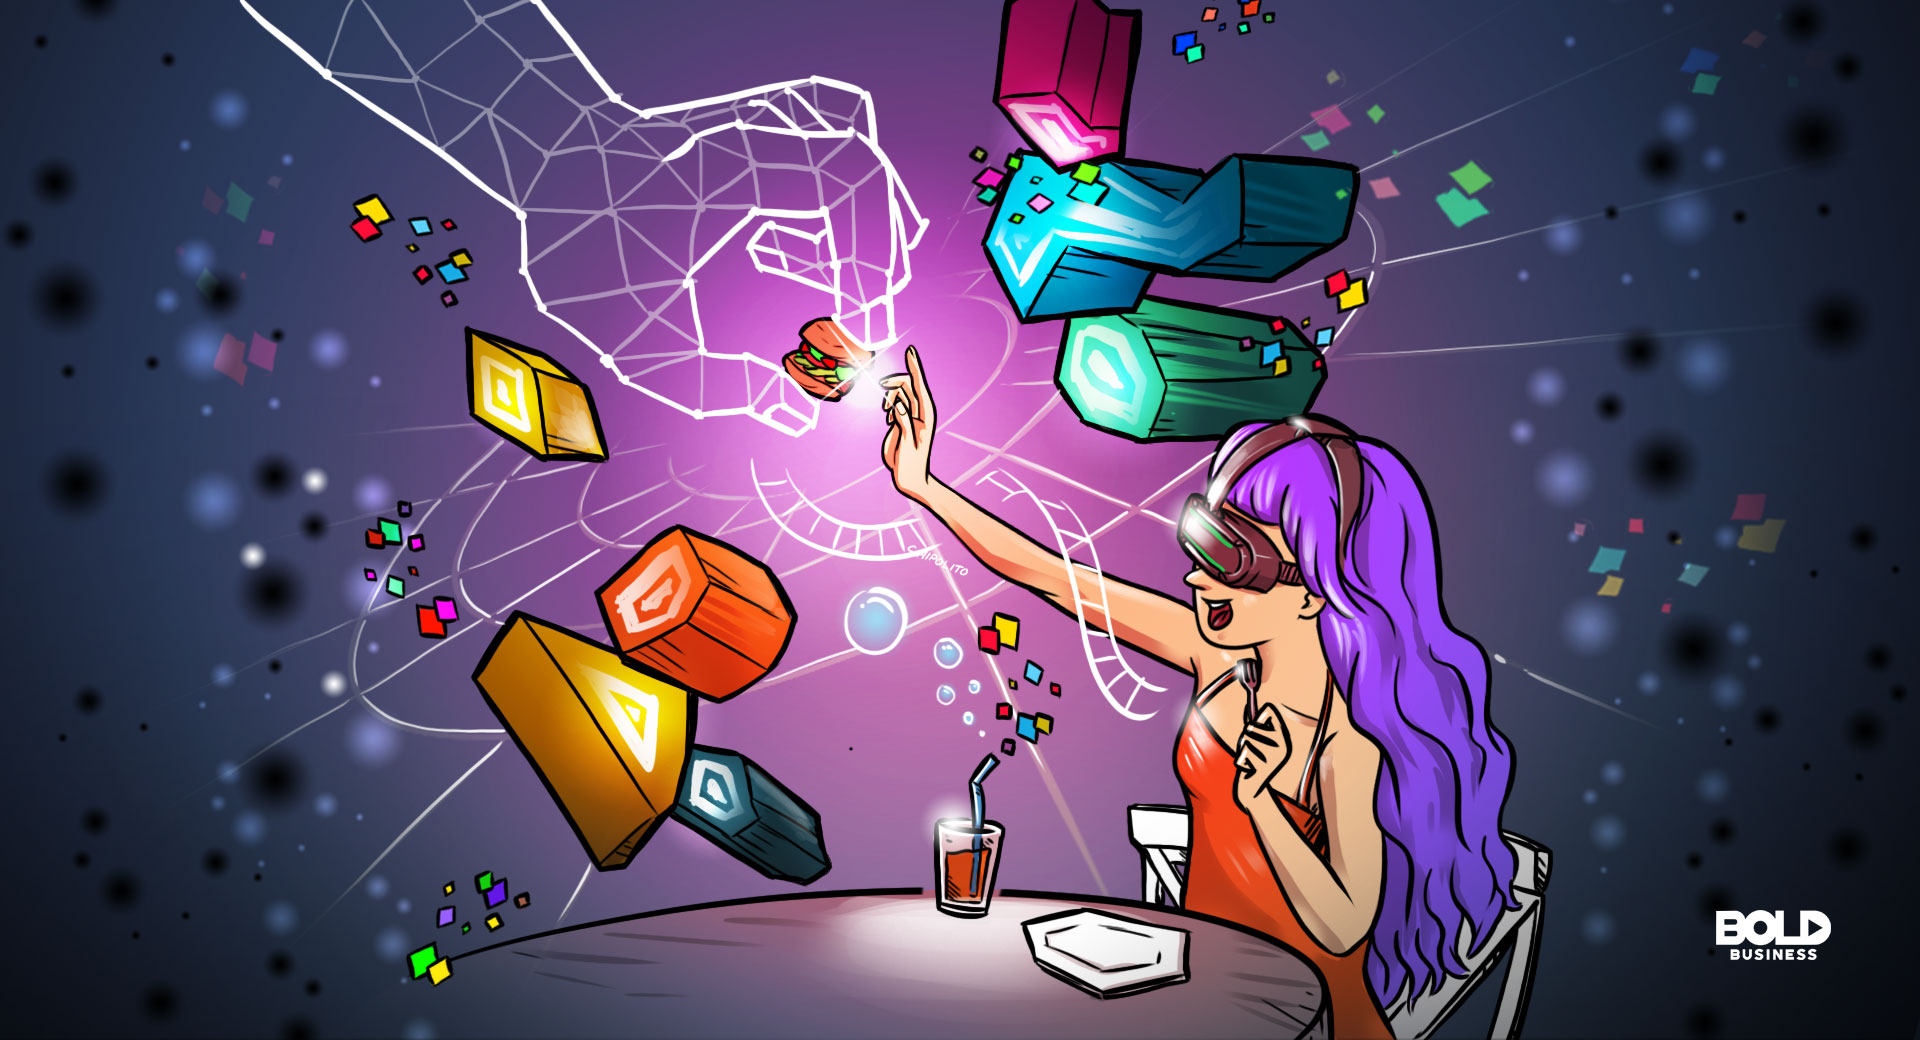 cartoon of a woman dining while wearing VR goggles amid a new restaurant concept that highlights virtual reality experience